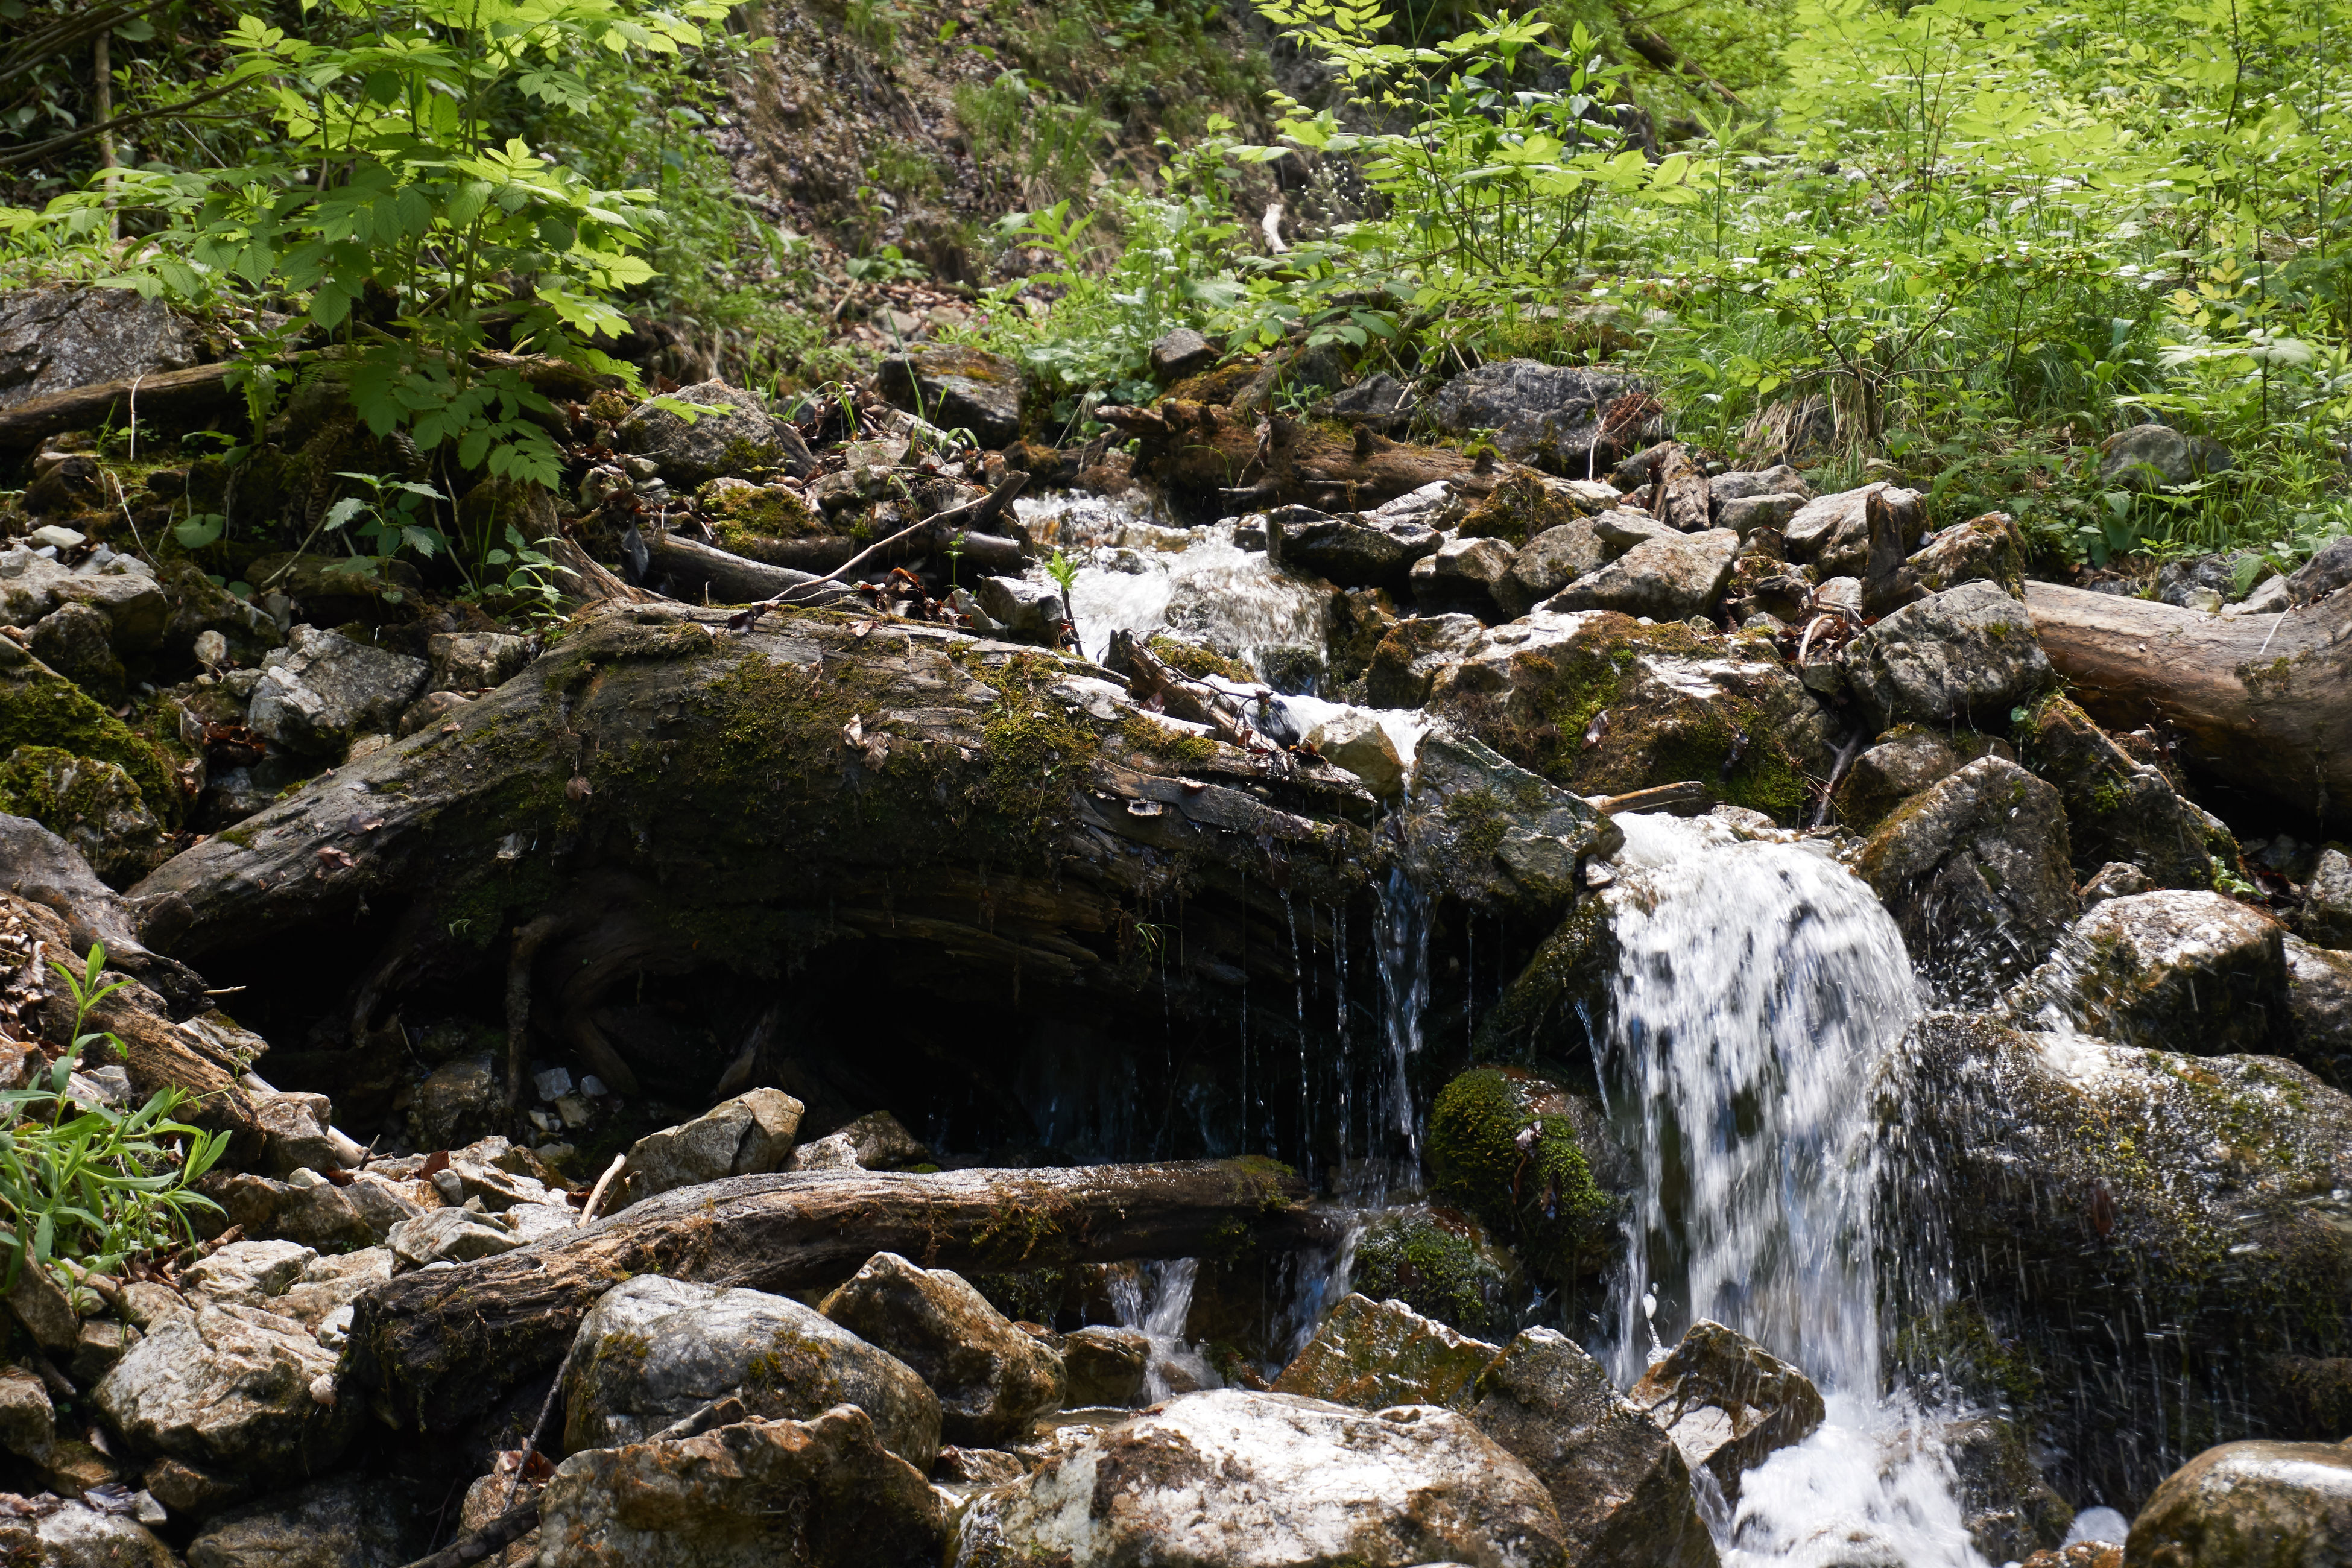 nature, rock - object, waterfall, motion, forest, beauty in nature, river, outdoors, water, no people, day, tree